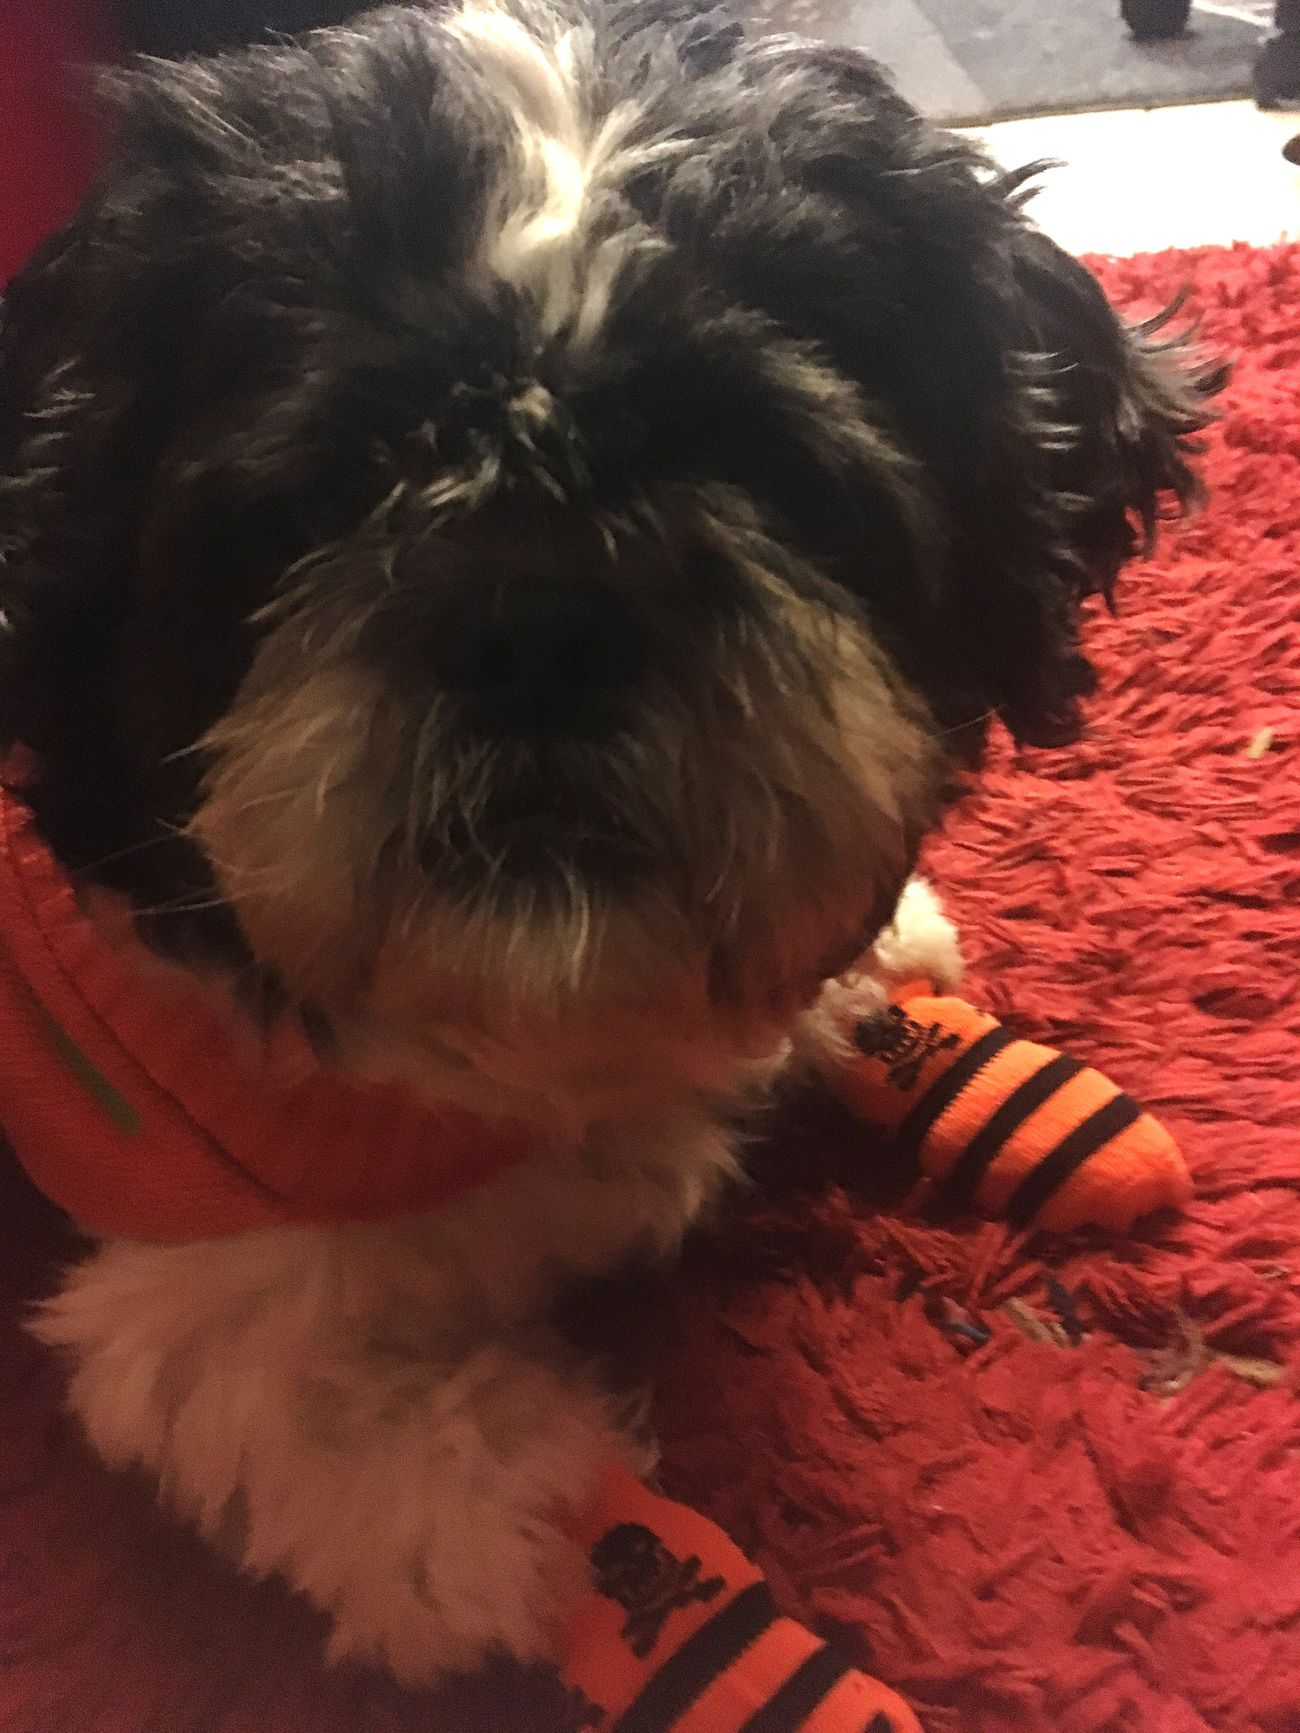 Pets Domestic Animals Dog Mammal Animal Themes One Animal Indoors  Close-up Pet Clothing No People Day Halloween Focus Object Shih Tzu Photography Baby Dogs Puppy Fall